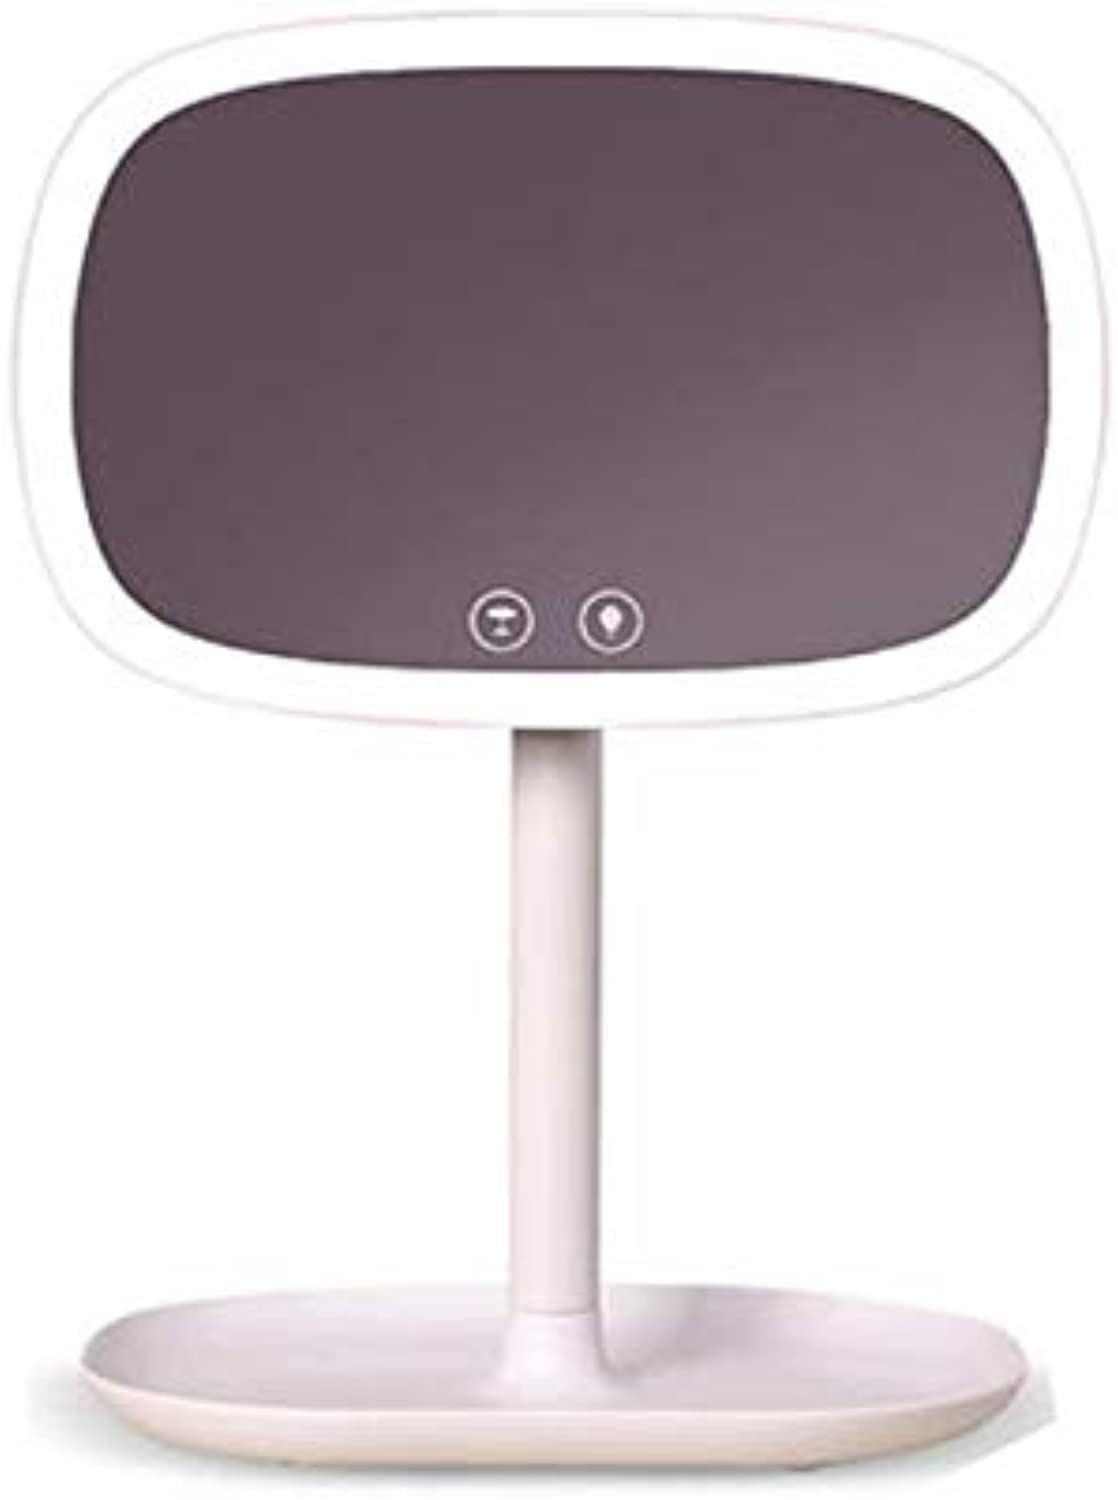 RUOAP Vanity Mirror with Light, LED Desktop Dormitory Household Storage Storage Smart Fill Light HD Portable Dressing Mirror,White,D